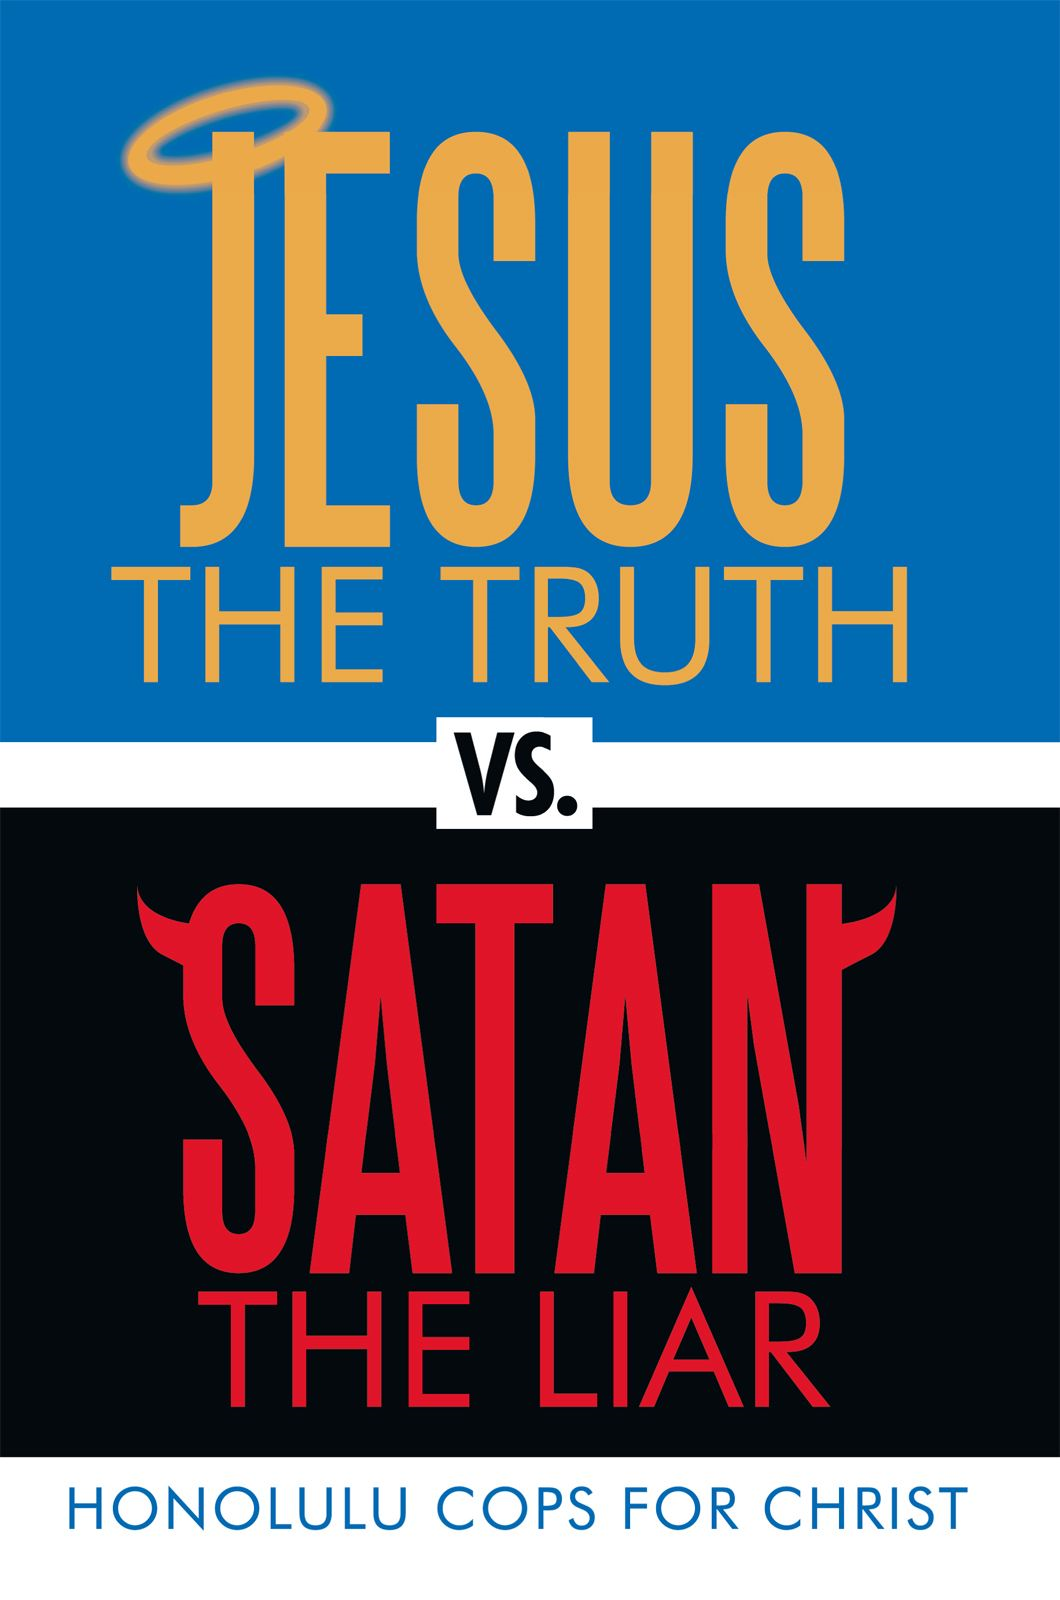 Jesus the Truth vs. Satan the Liar